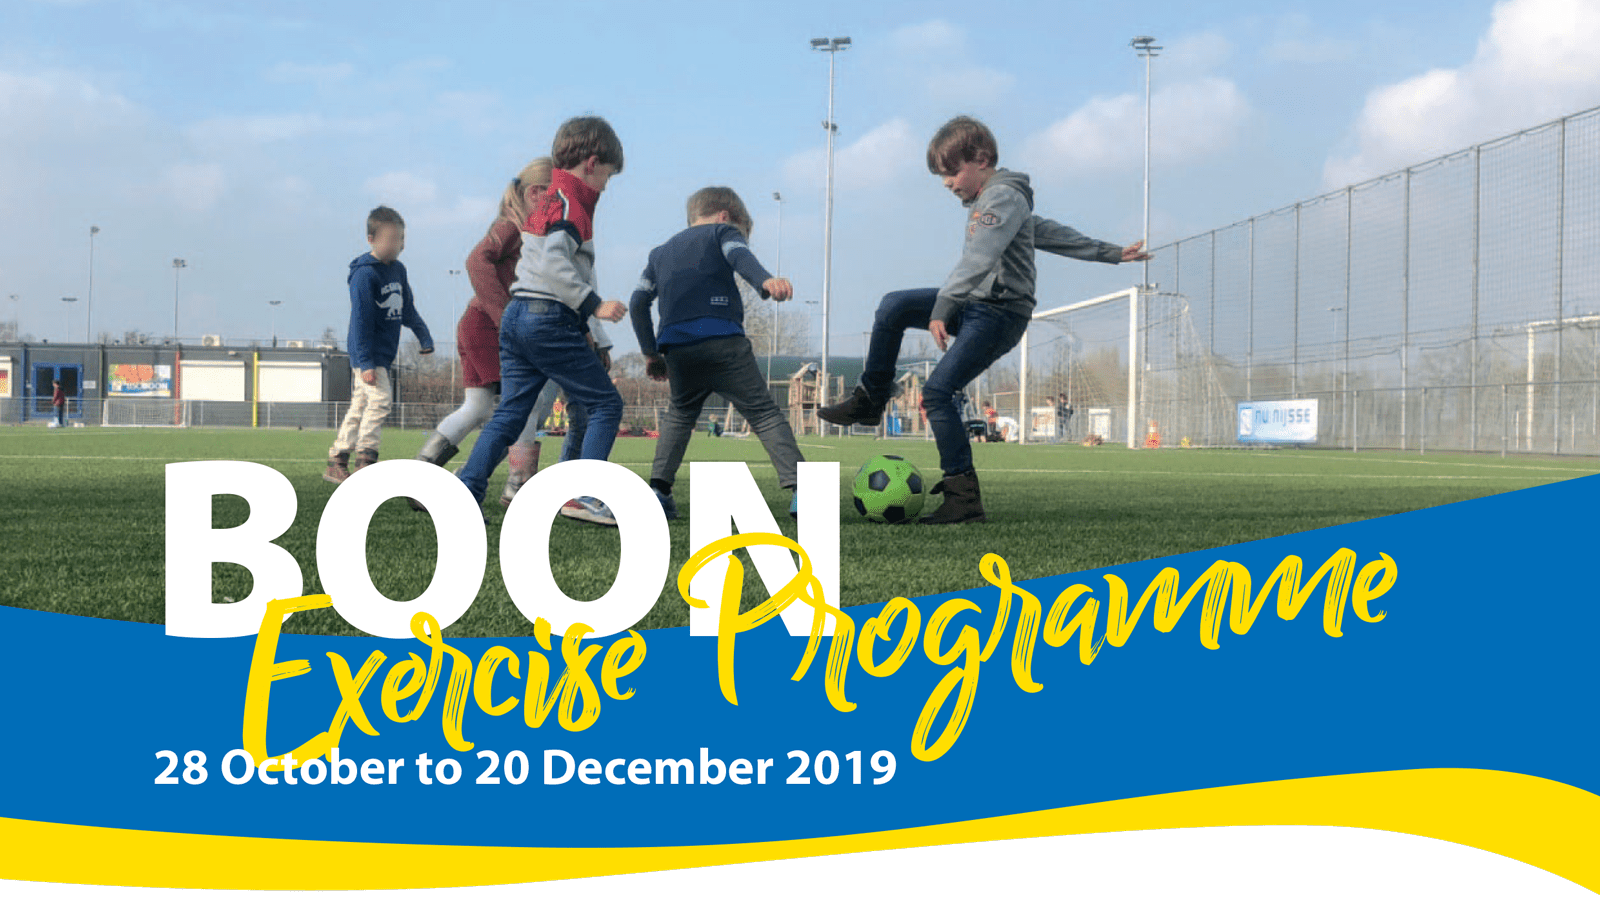 https://www.bsoboon.nl/amstelveen/wp-content/uploads/2019/11/BOON-Exercise-Program-okt-nov-dec.pdf